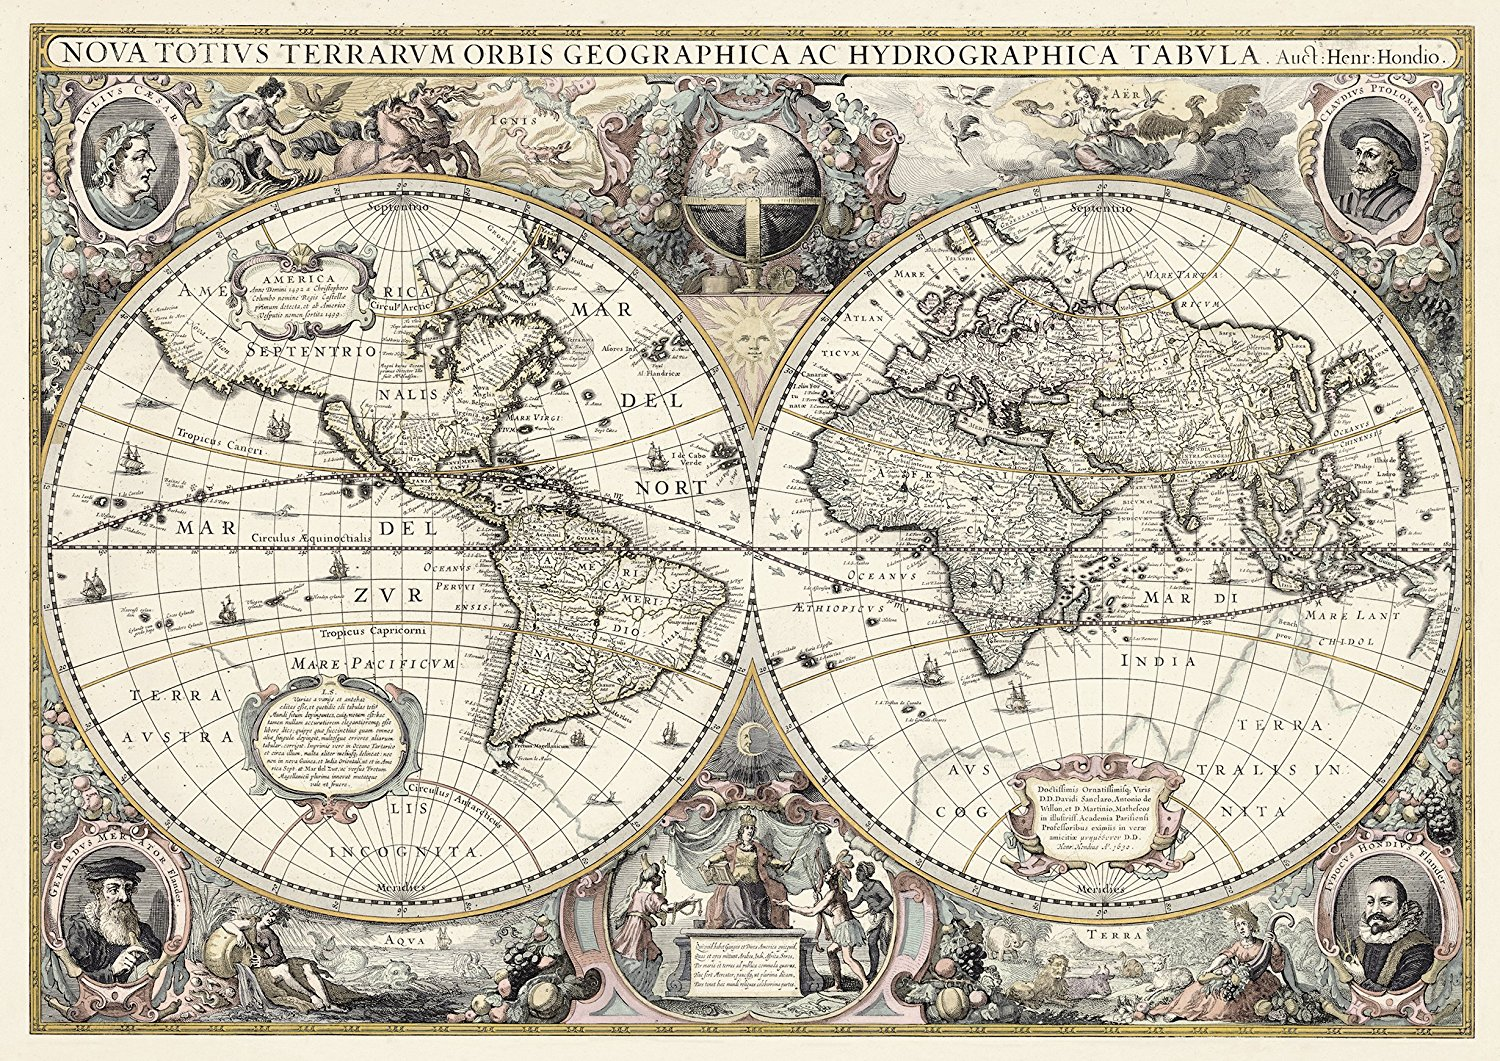 Puzzle do it yourself antique world map ravensburger 19931 1200 do it yourself antique world map gumiabroncs Image collections